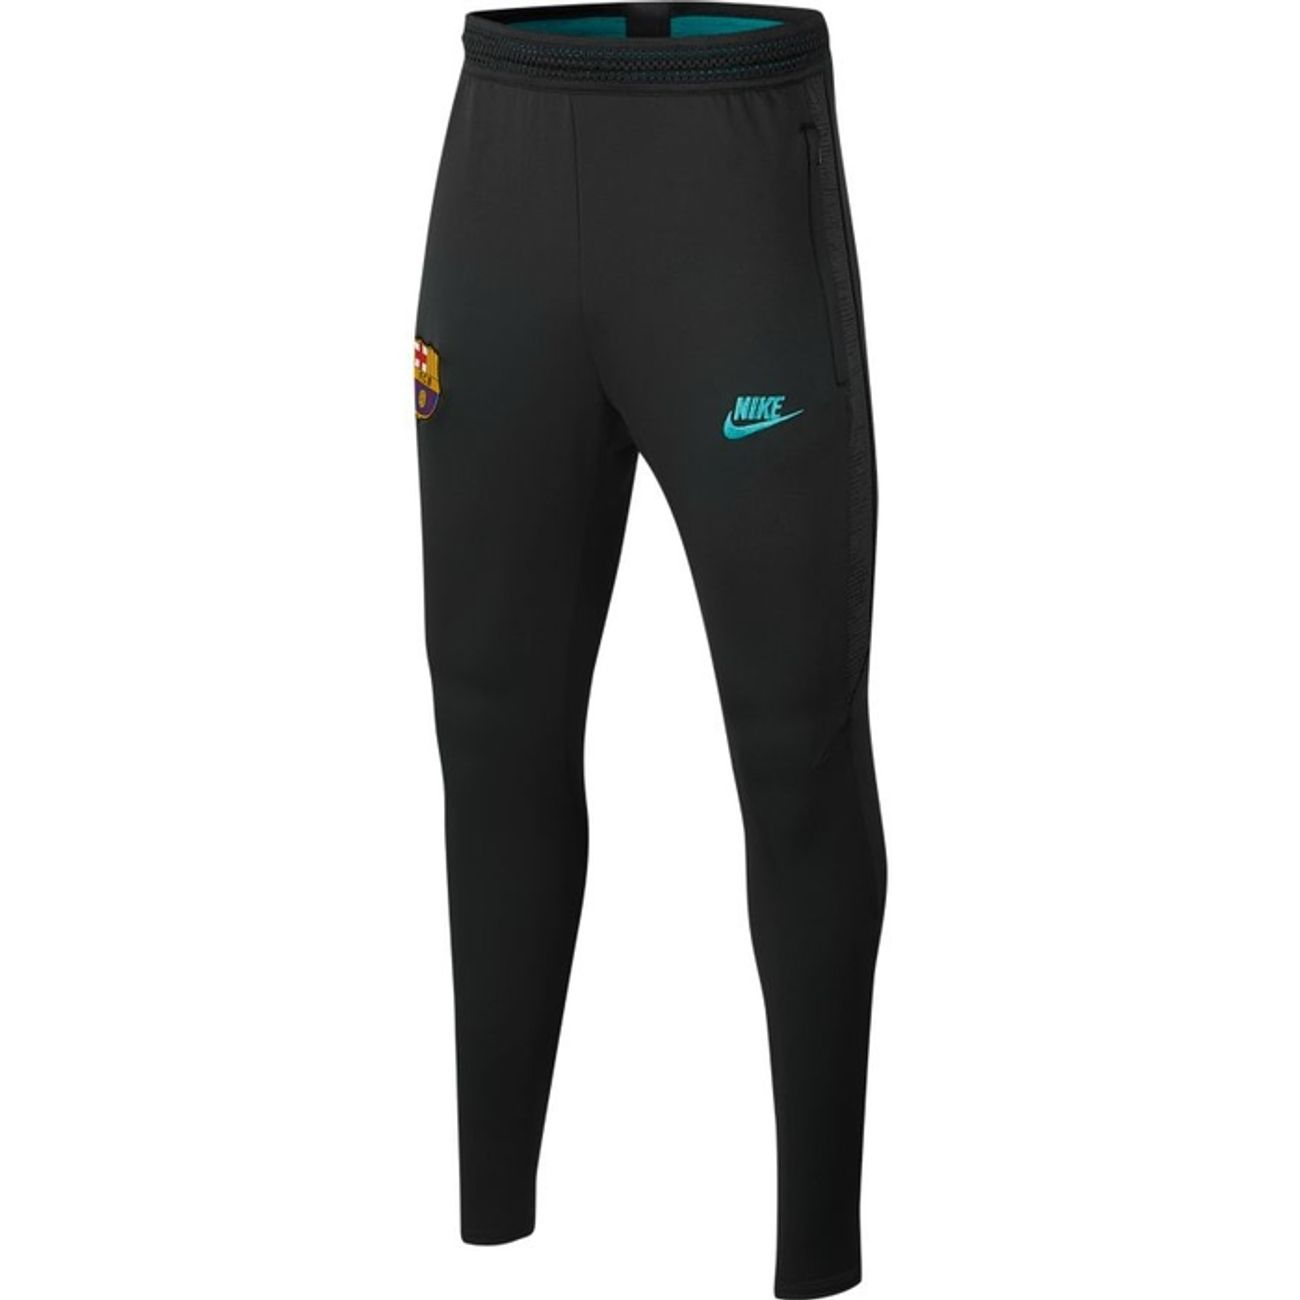 PANTALON  homme NIKE BARCA TECH THIRD 2019